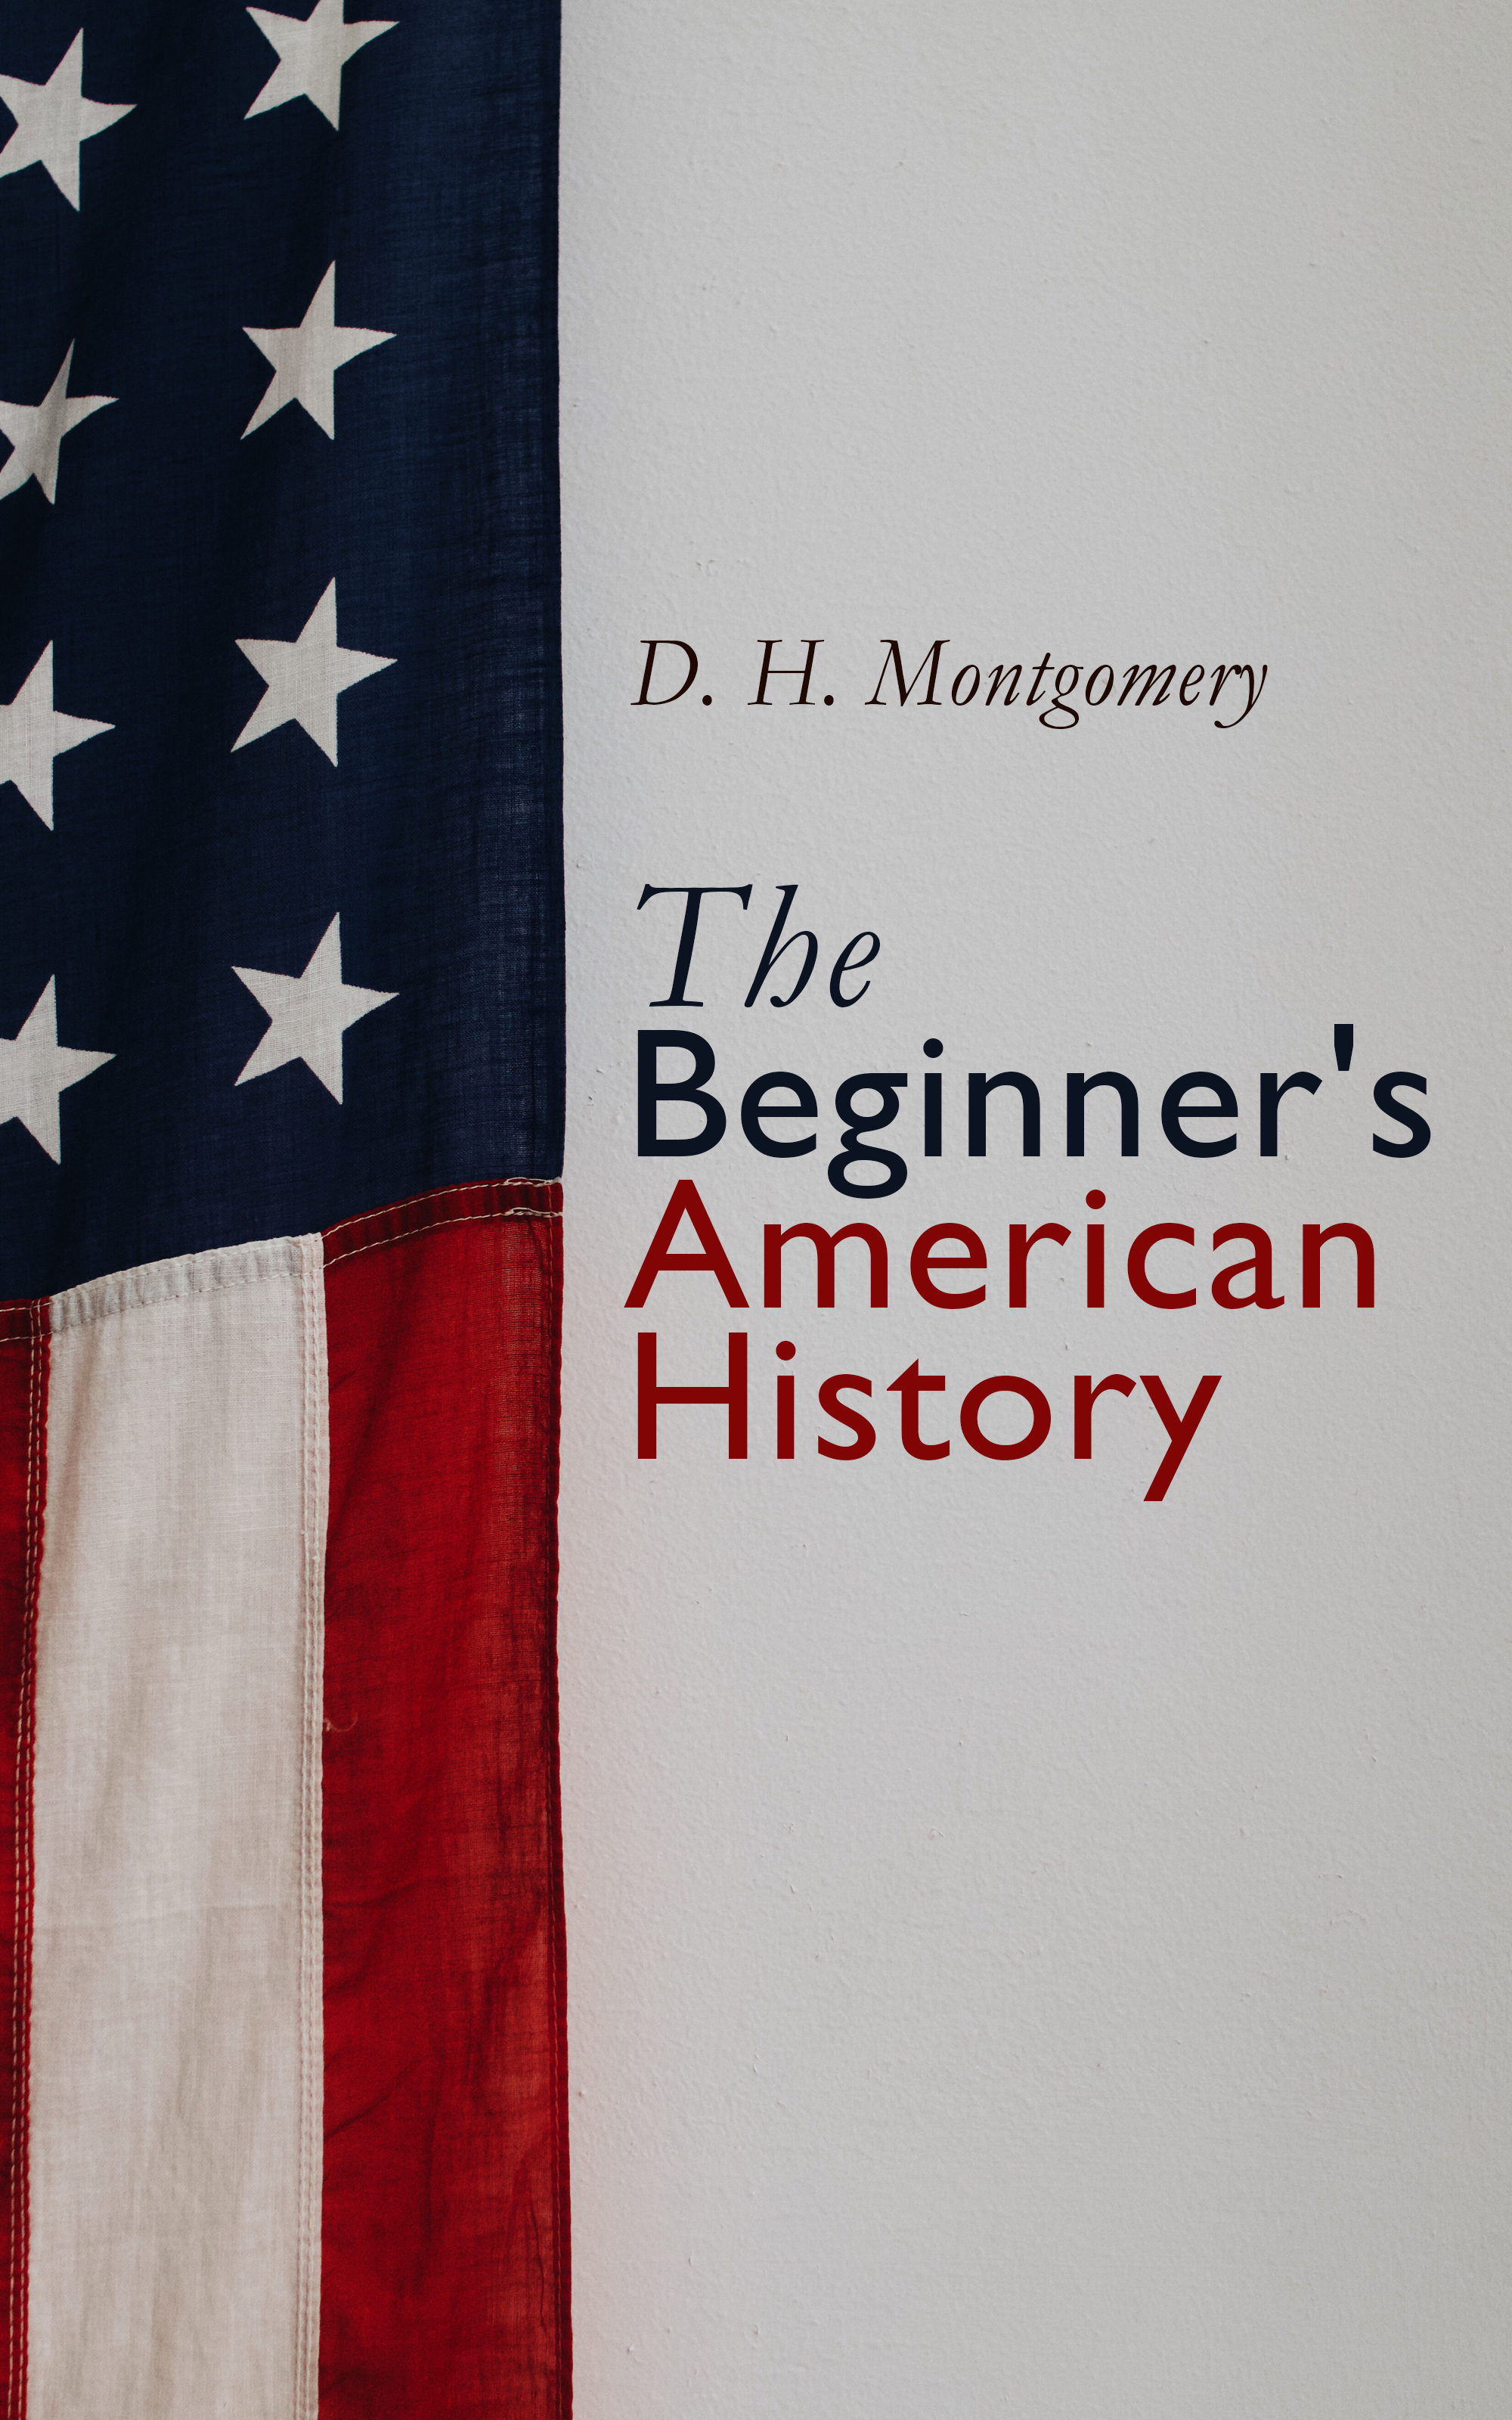 D. H. Montgomery The Beginner's American History